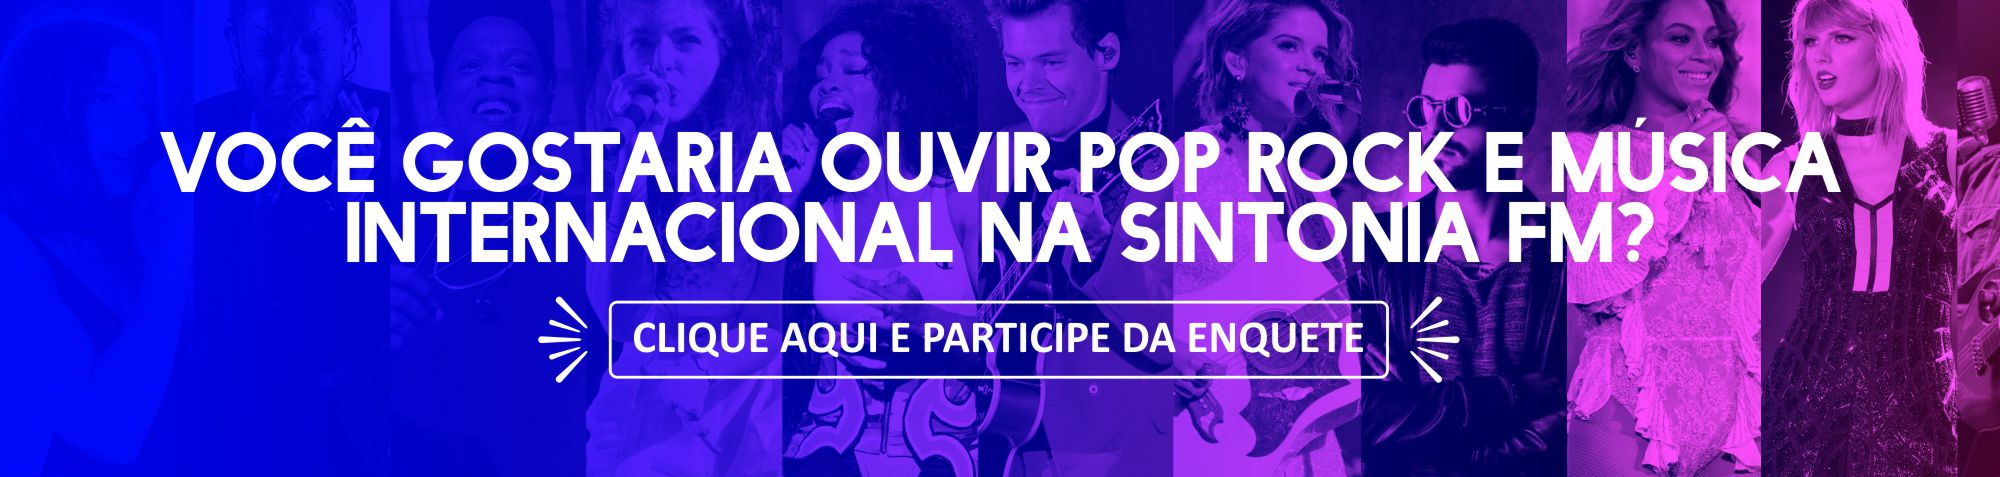 Mais Pop Rock e música Internacional na Sintonia?